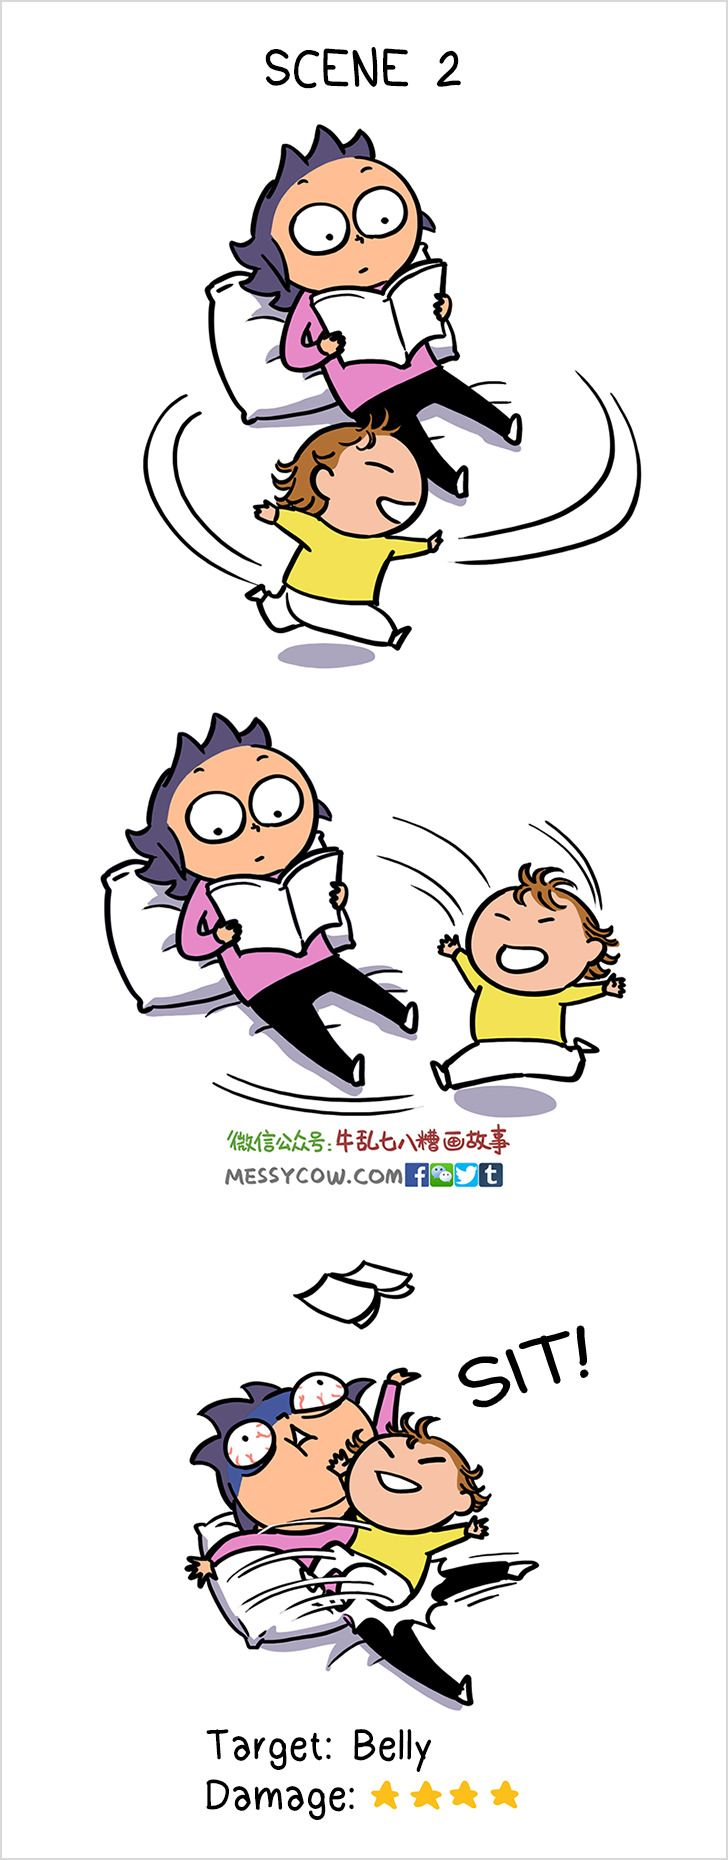 AMother Illustrates the Pain ofRaising aChild, and ItMade UsCry and Laugh atthe Same Time